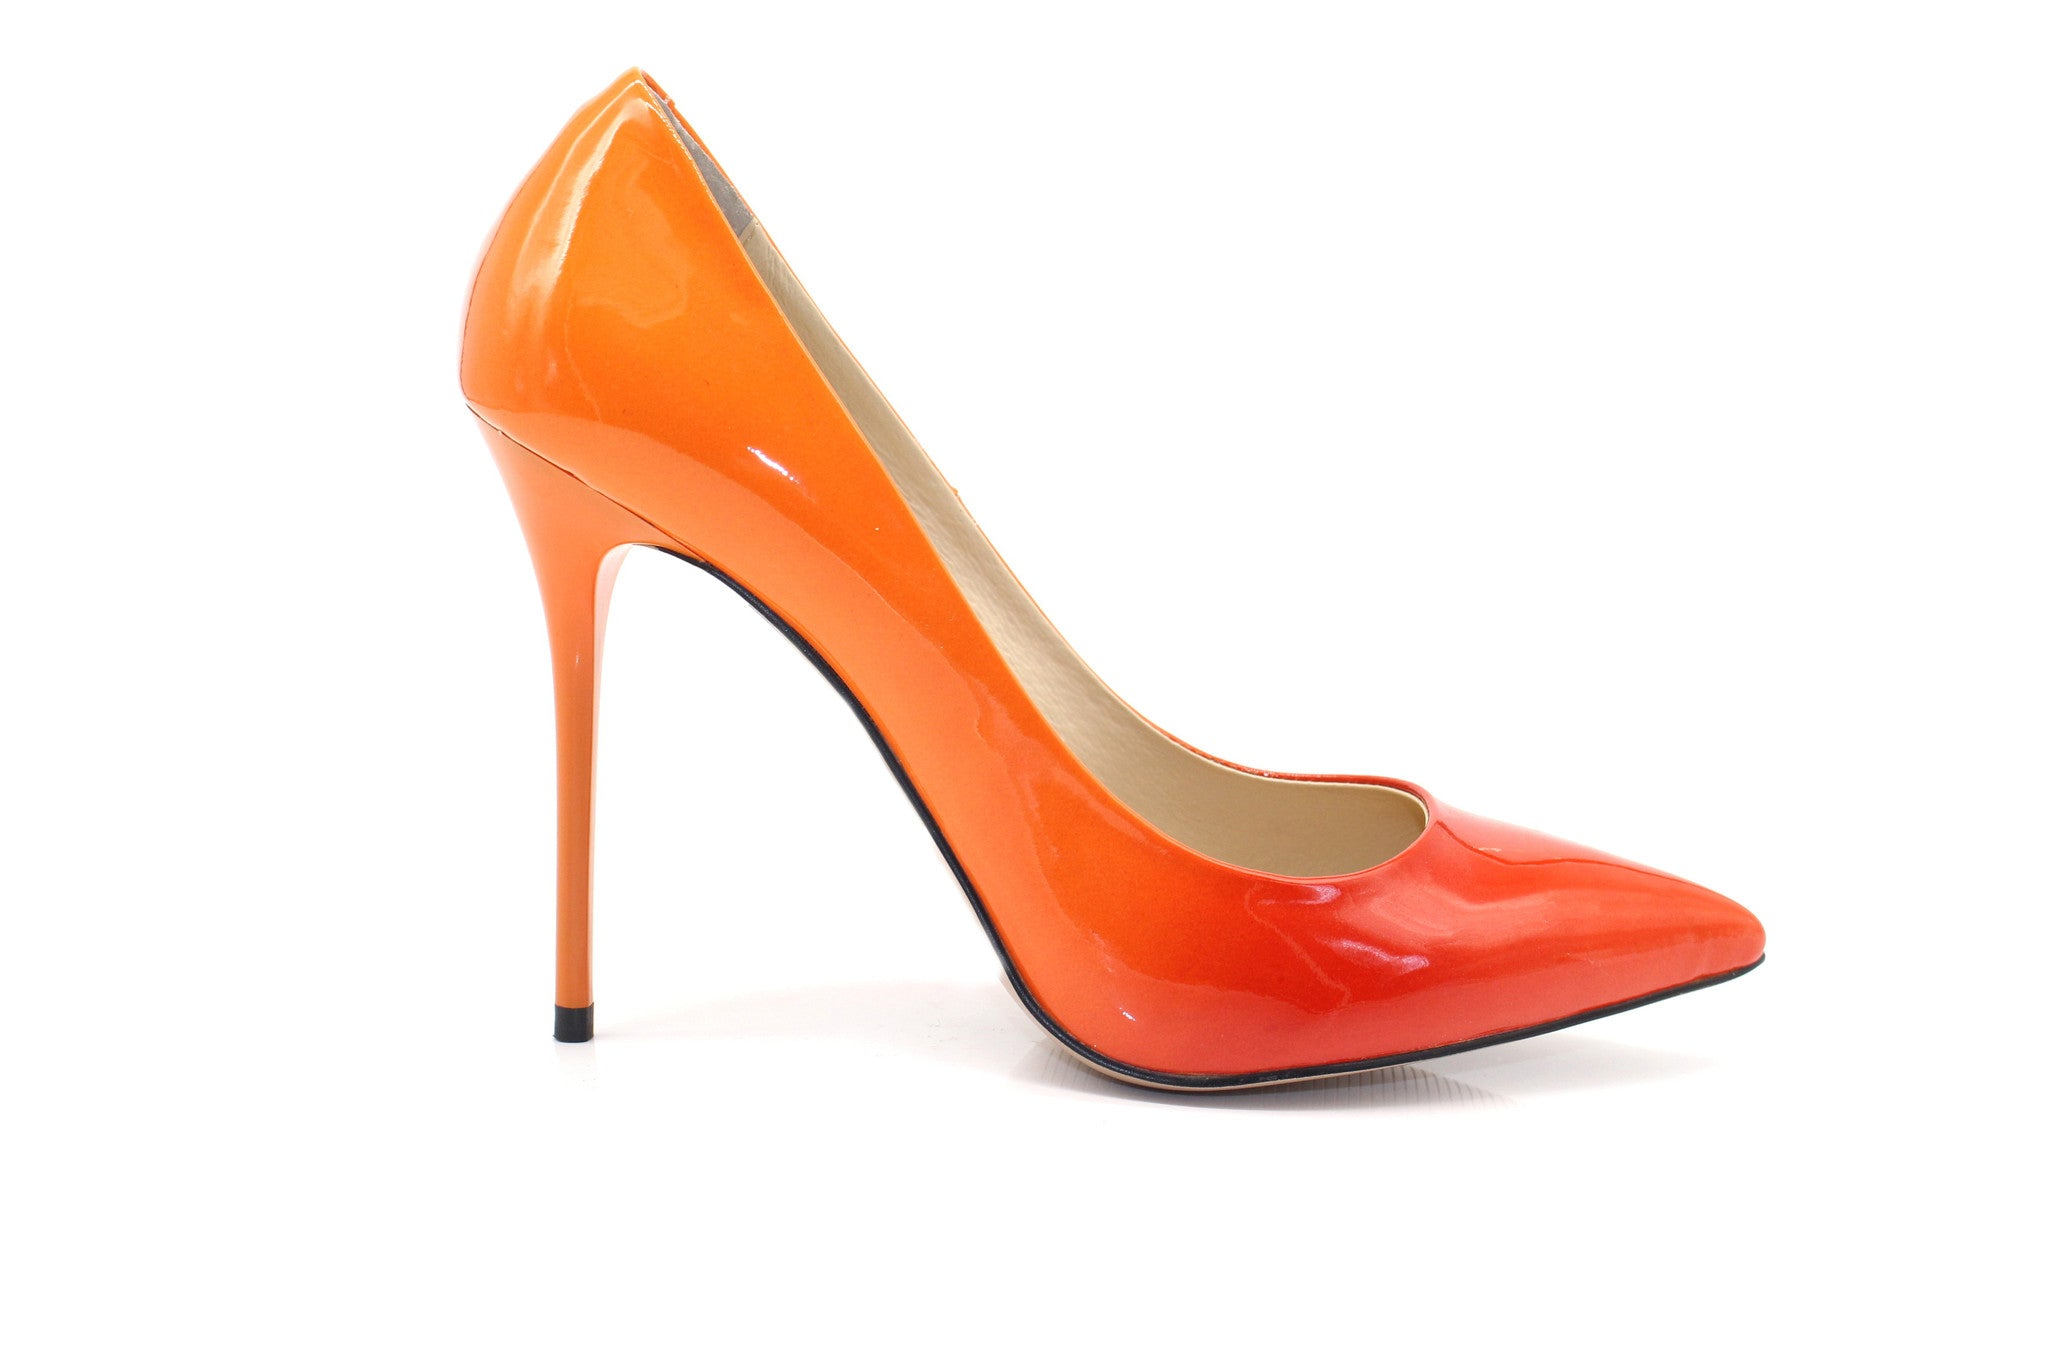 1d28b99e75 Stylish Shoes - Ombre Orange High Heels - Angelina Voloshina - AV Heels - 1  ...